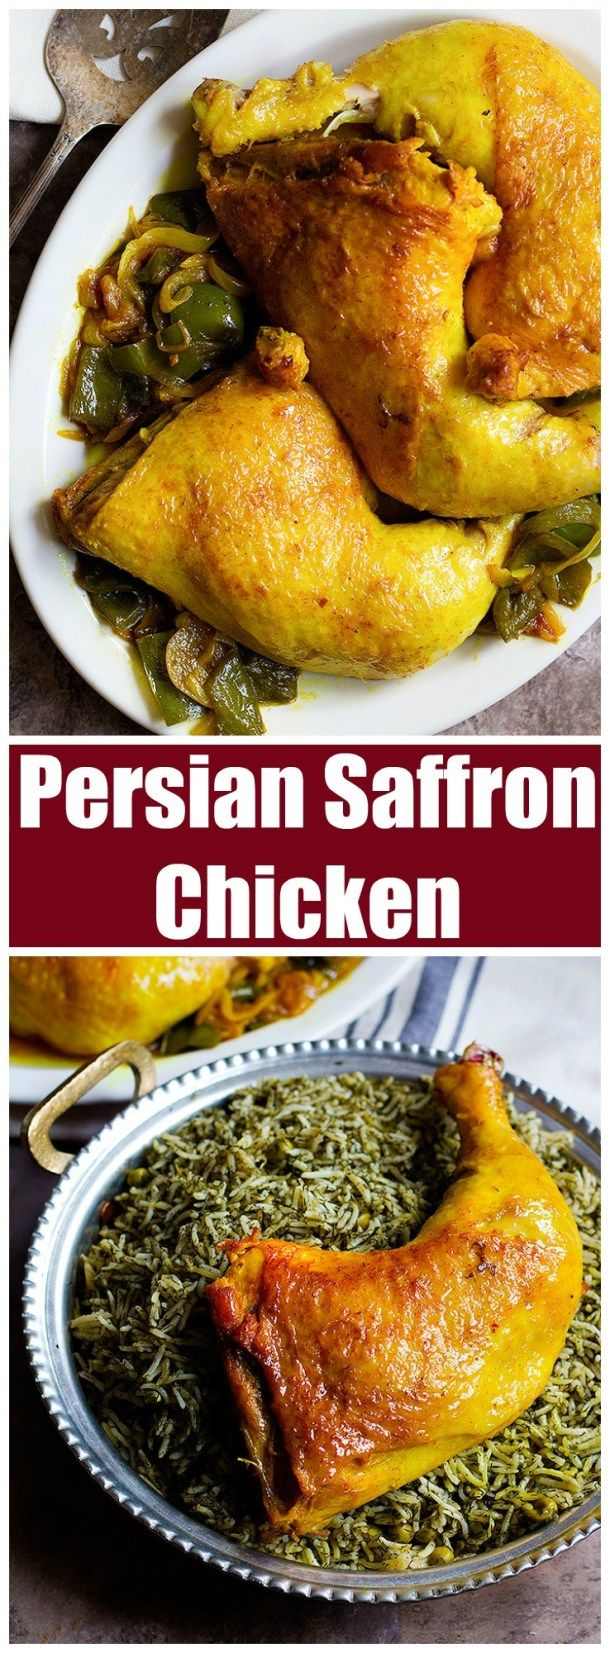 Saffron chicken persian chicken chicken with saffron persian saffron chicken persian chicken chicken with saffron persian chicken recipe persian recipes forumfinder Image collections